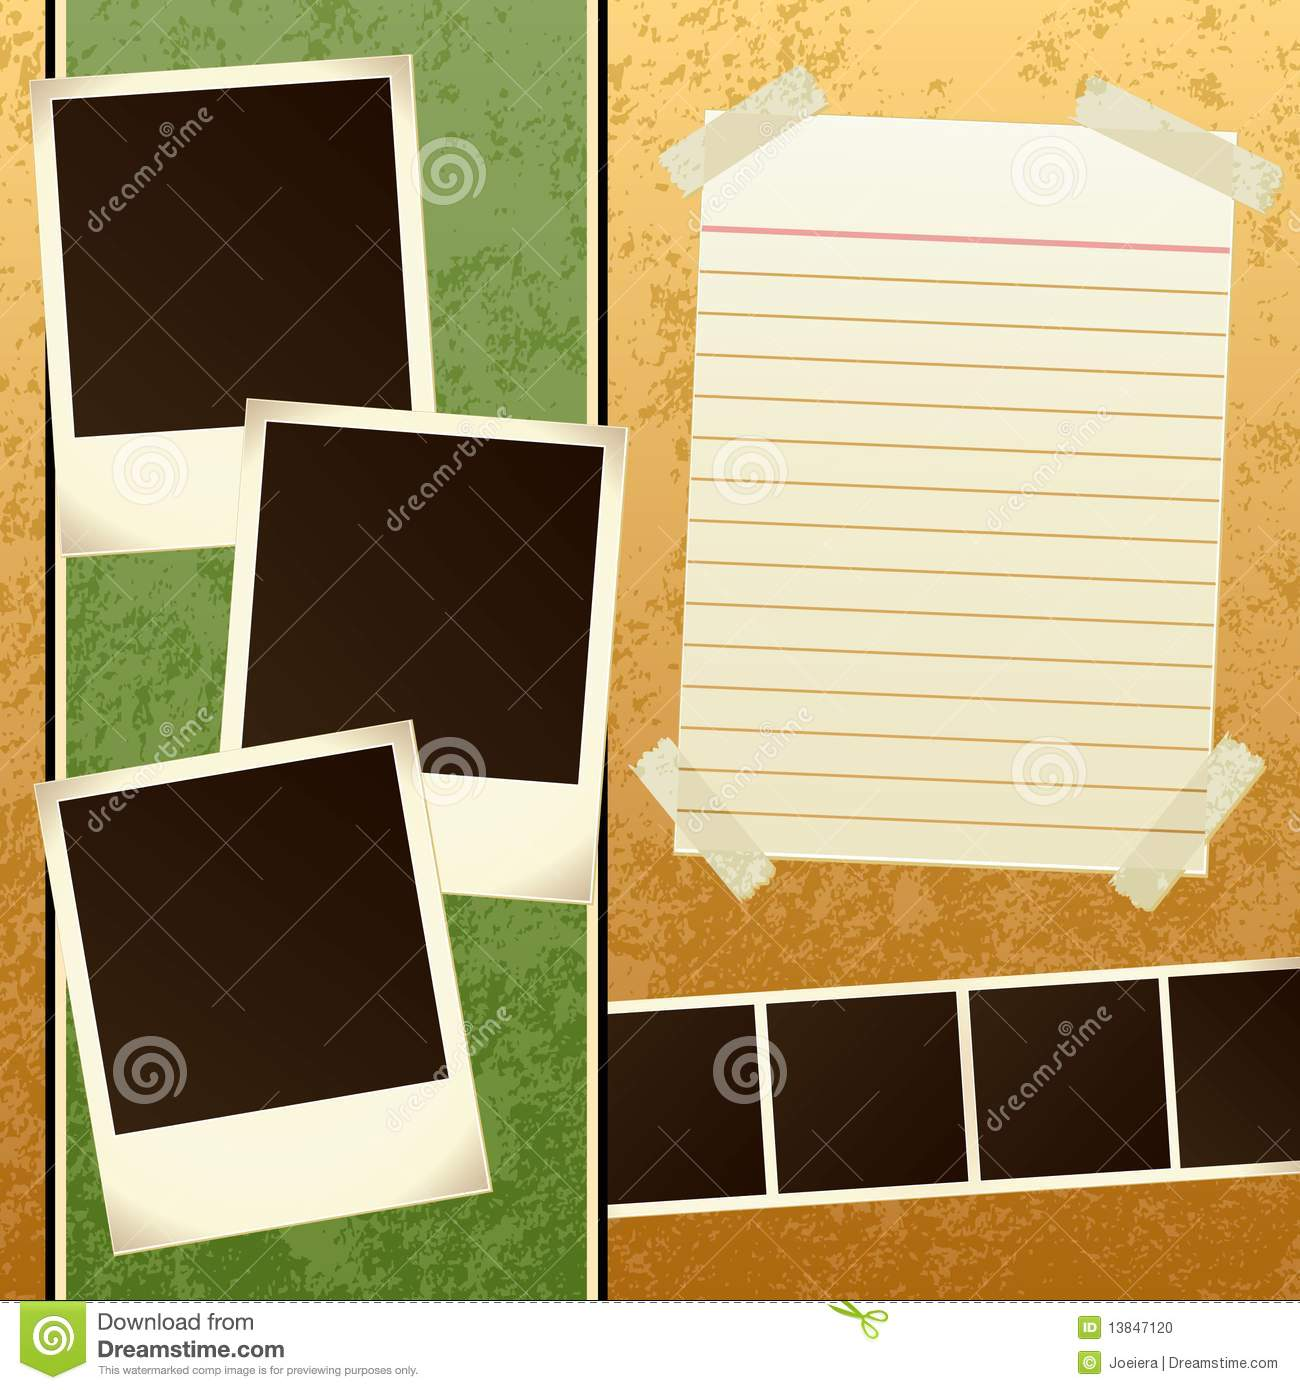 free scrapbook templates - gse.bookbinder.co, Modern powerpoint